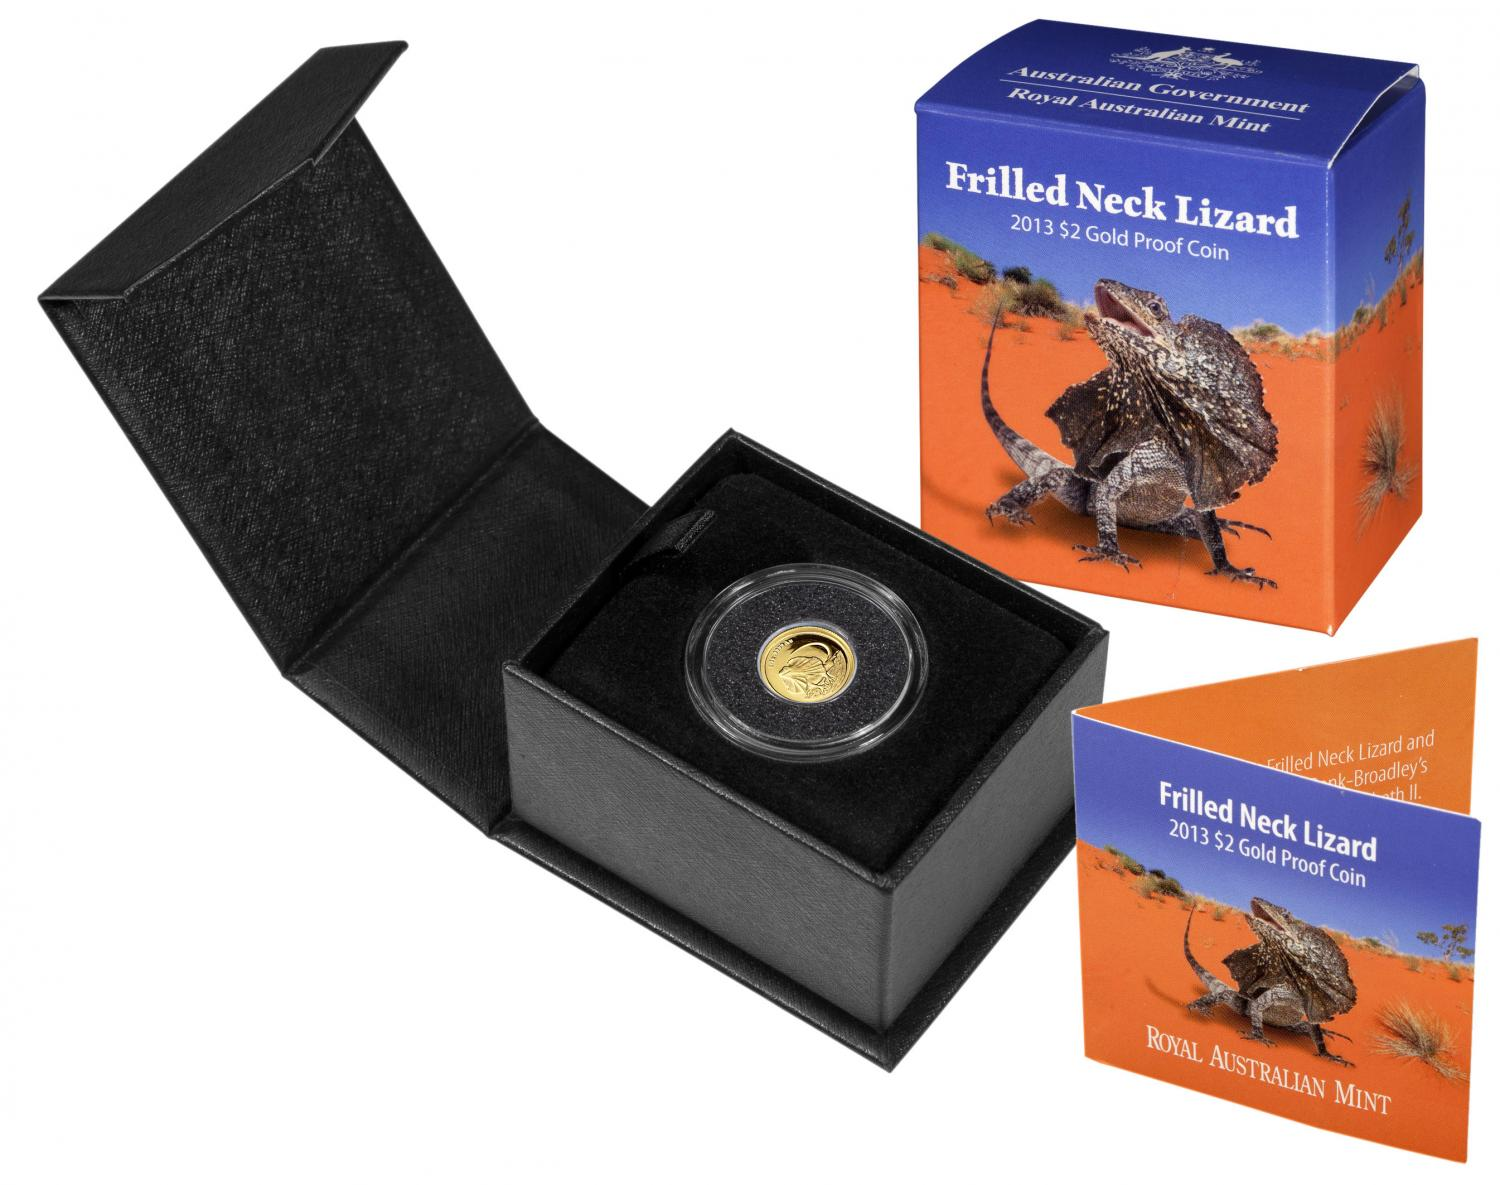 Thumbnail for 2013 Frilled Neck Lizard $2.00 Gold Proof